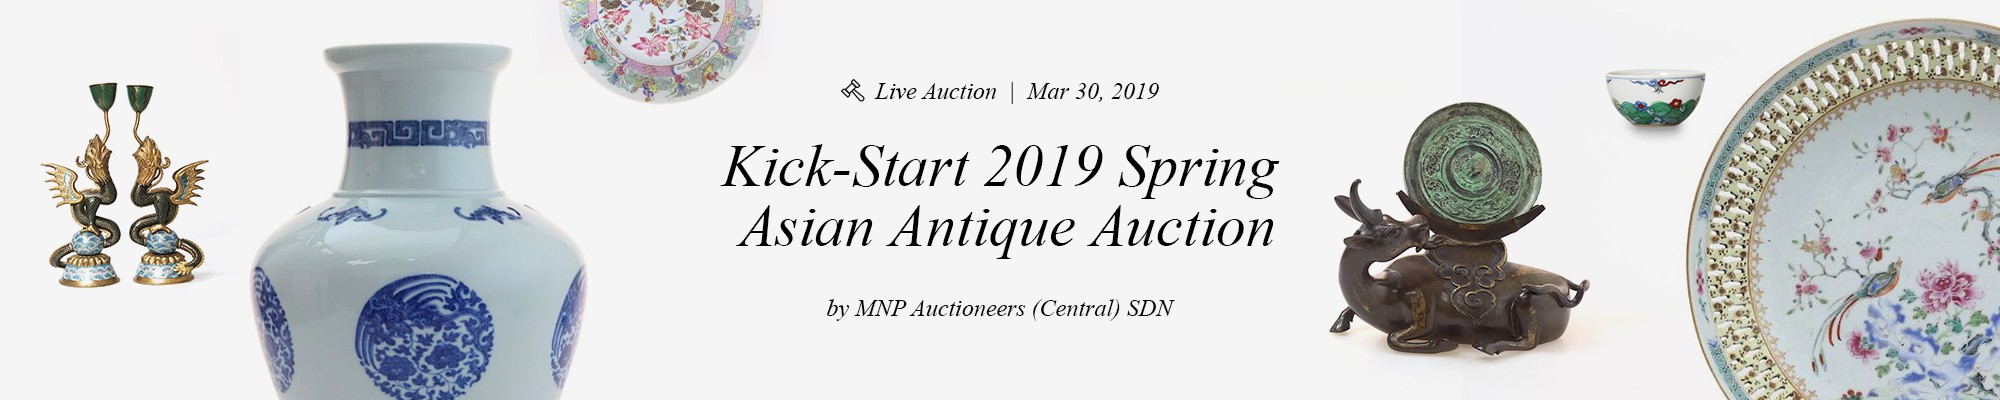 kick-start-2019-spring-asian-antique-auction-mnp-auctioneers-central-sdn